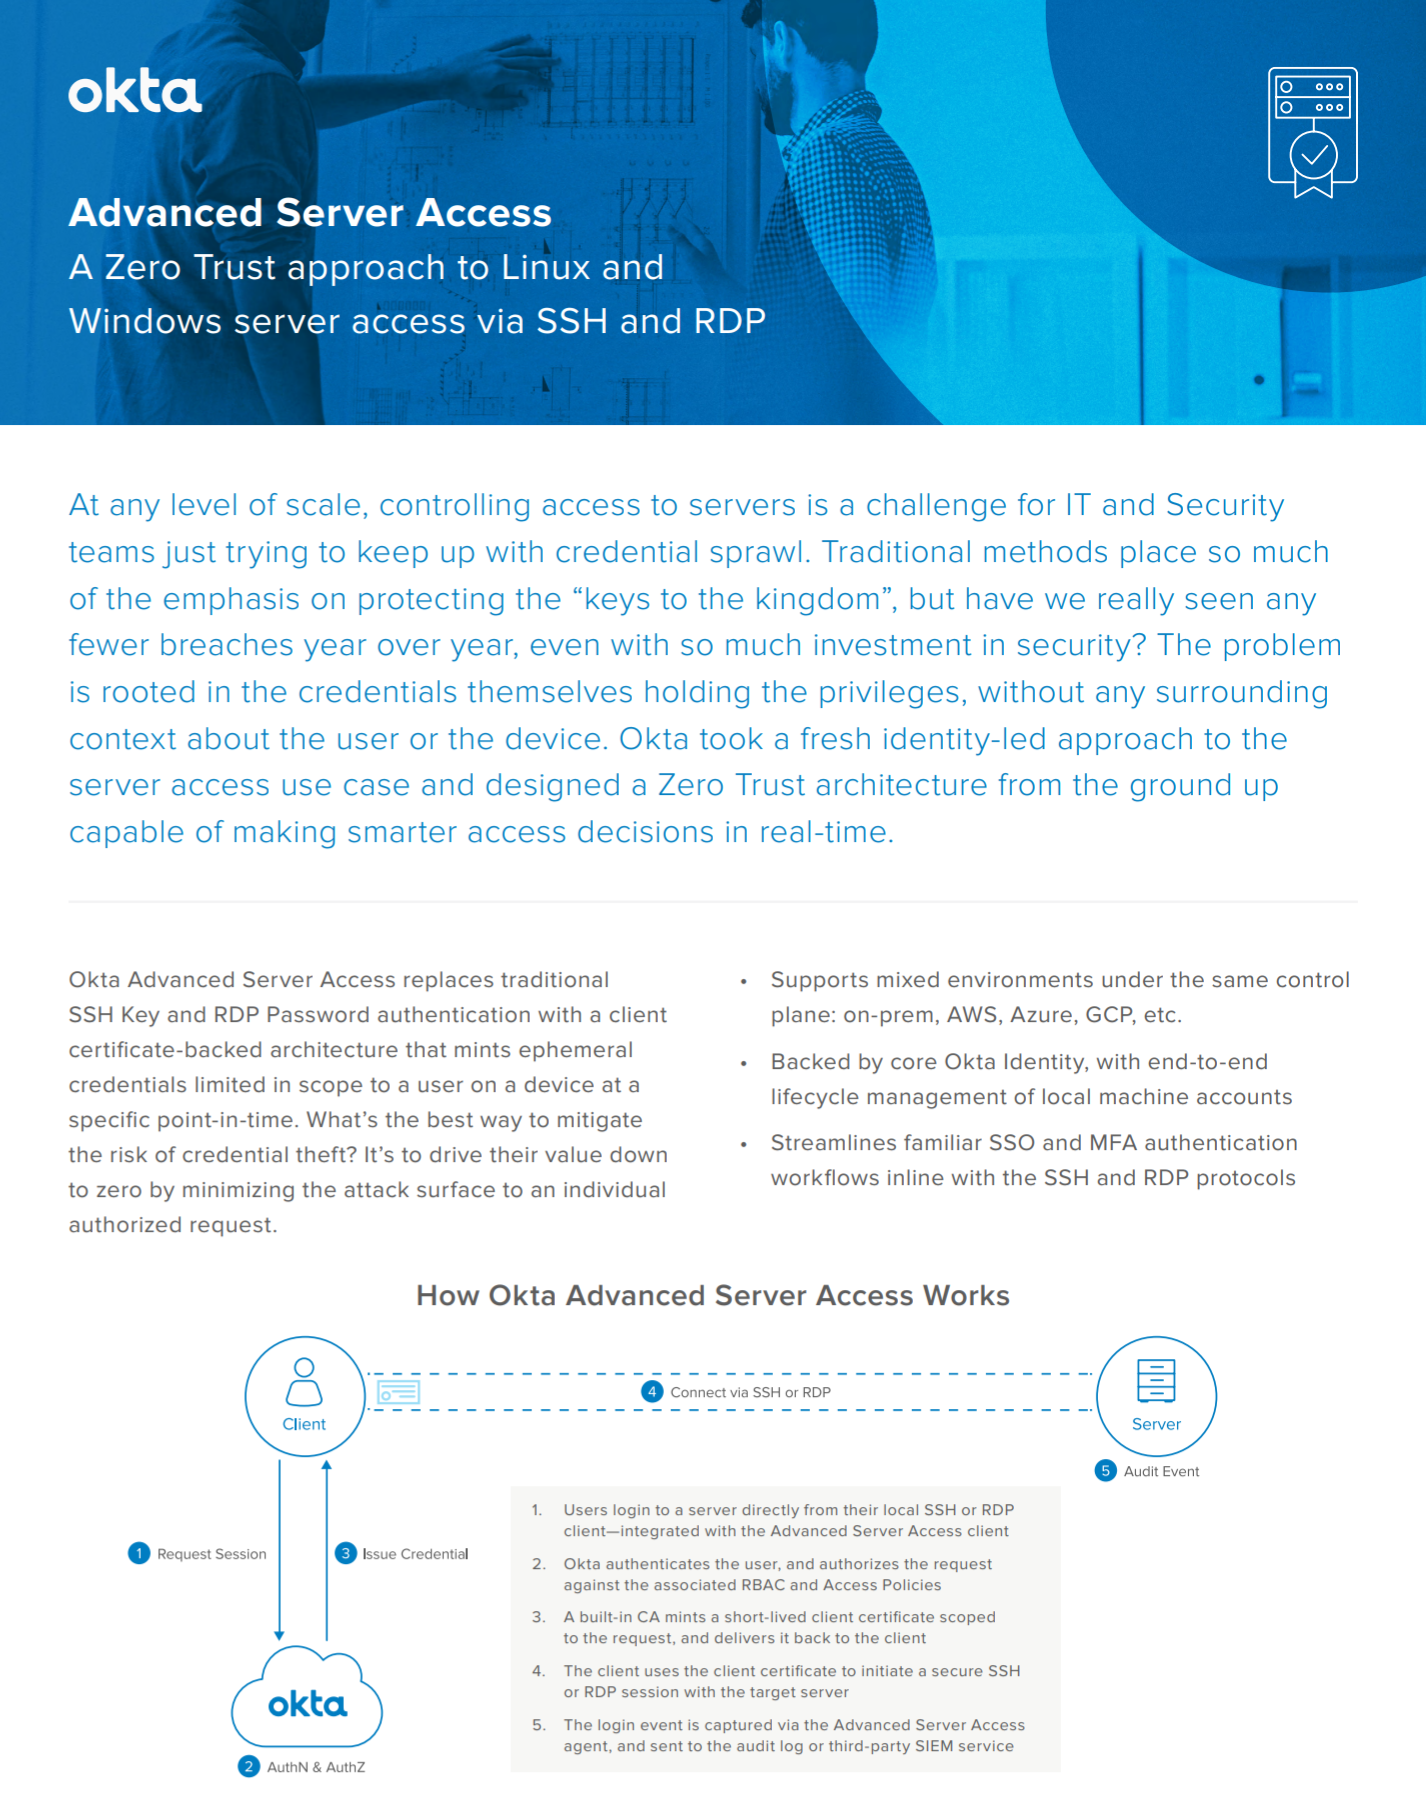 Learn how Okta helps to make smarter access decisions in real-time.